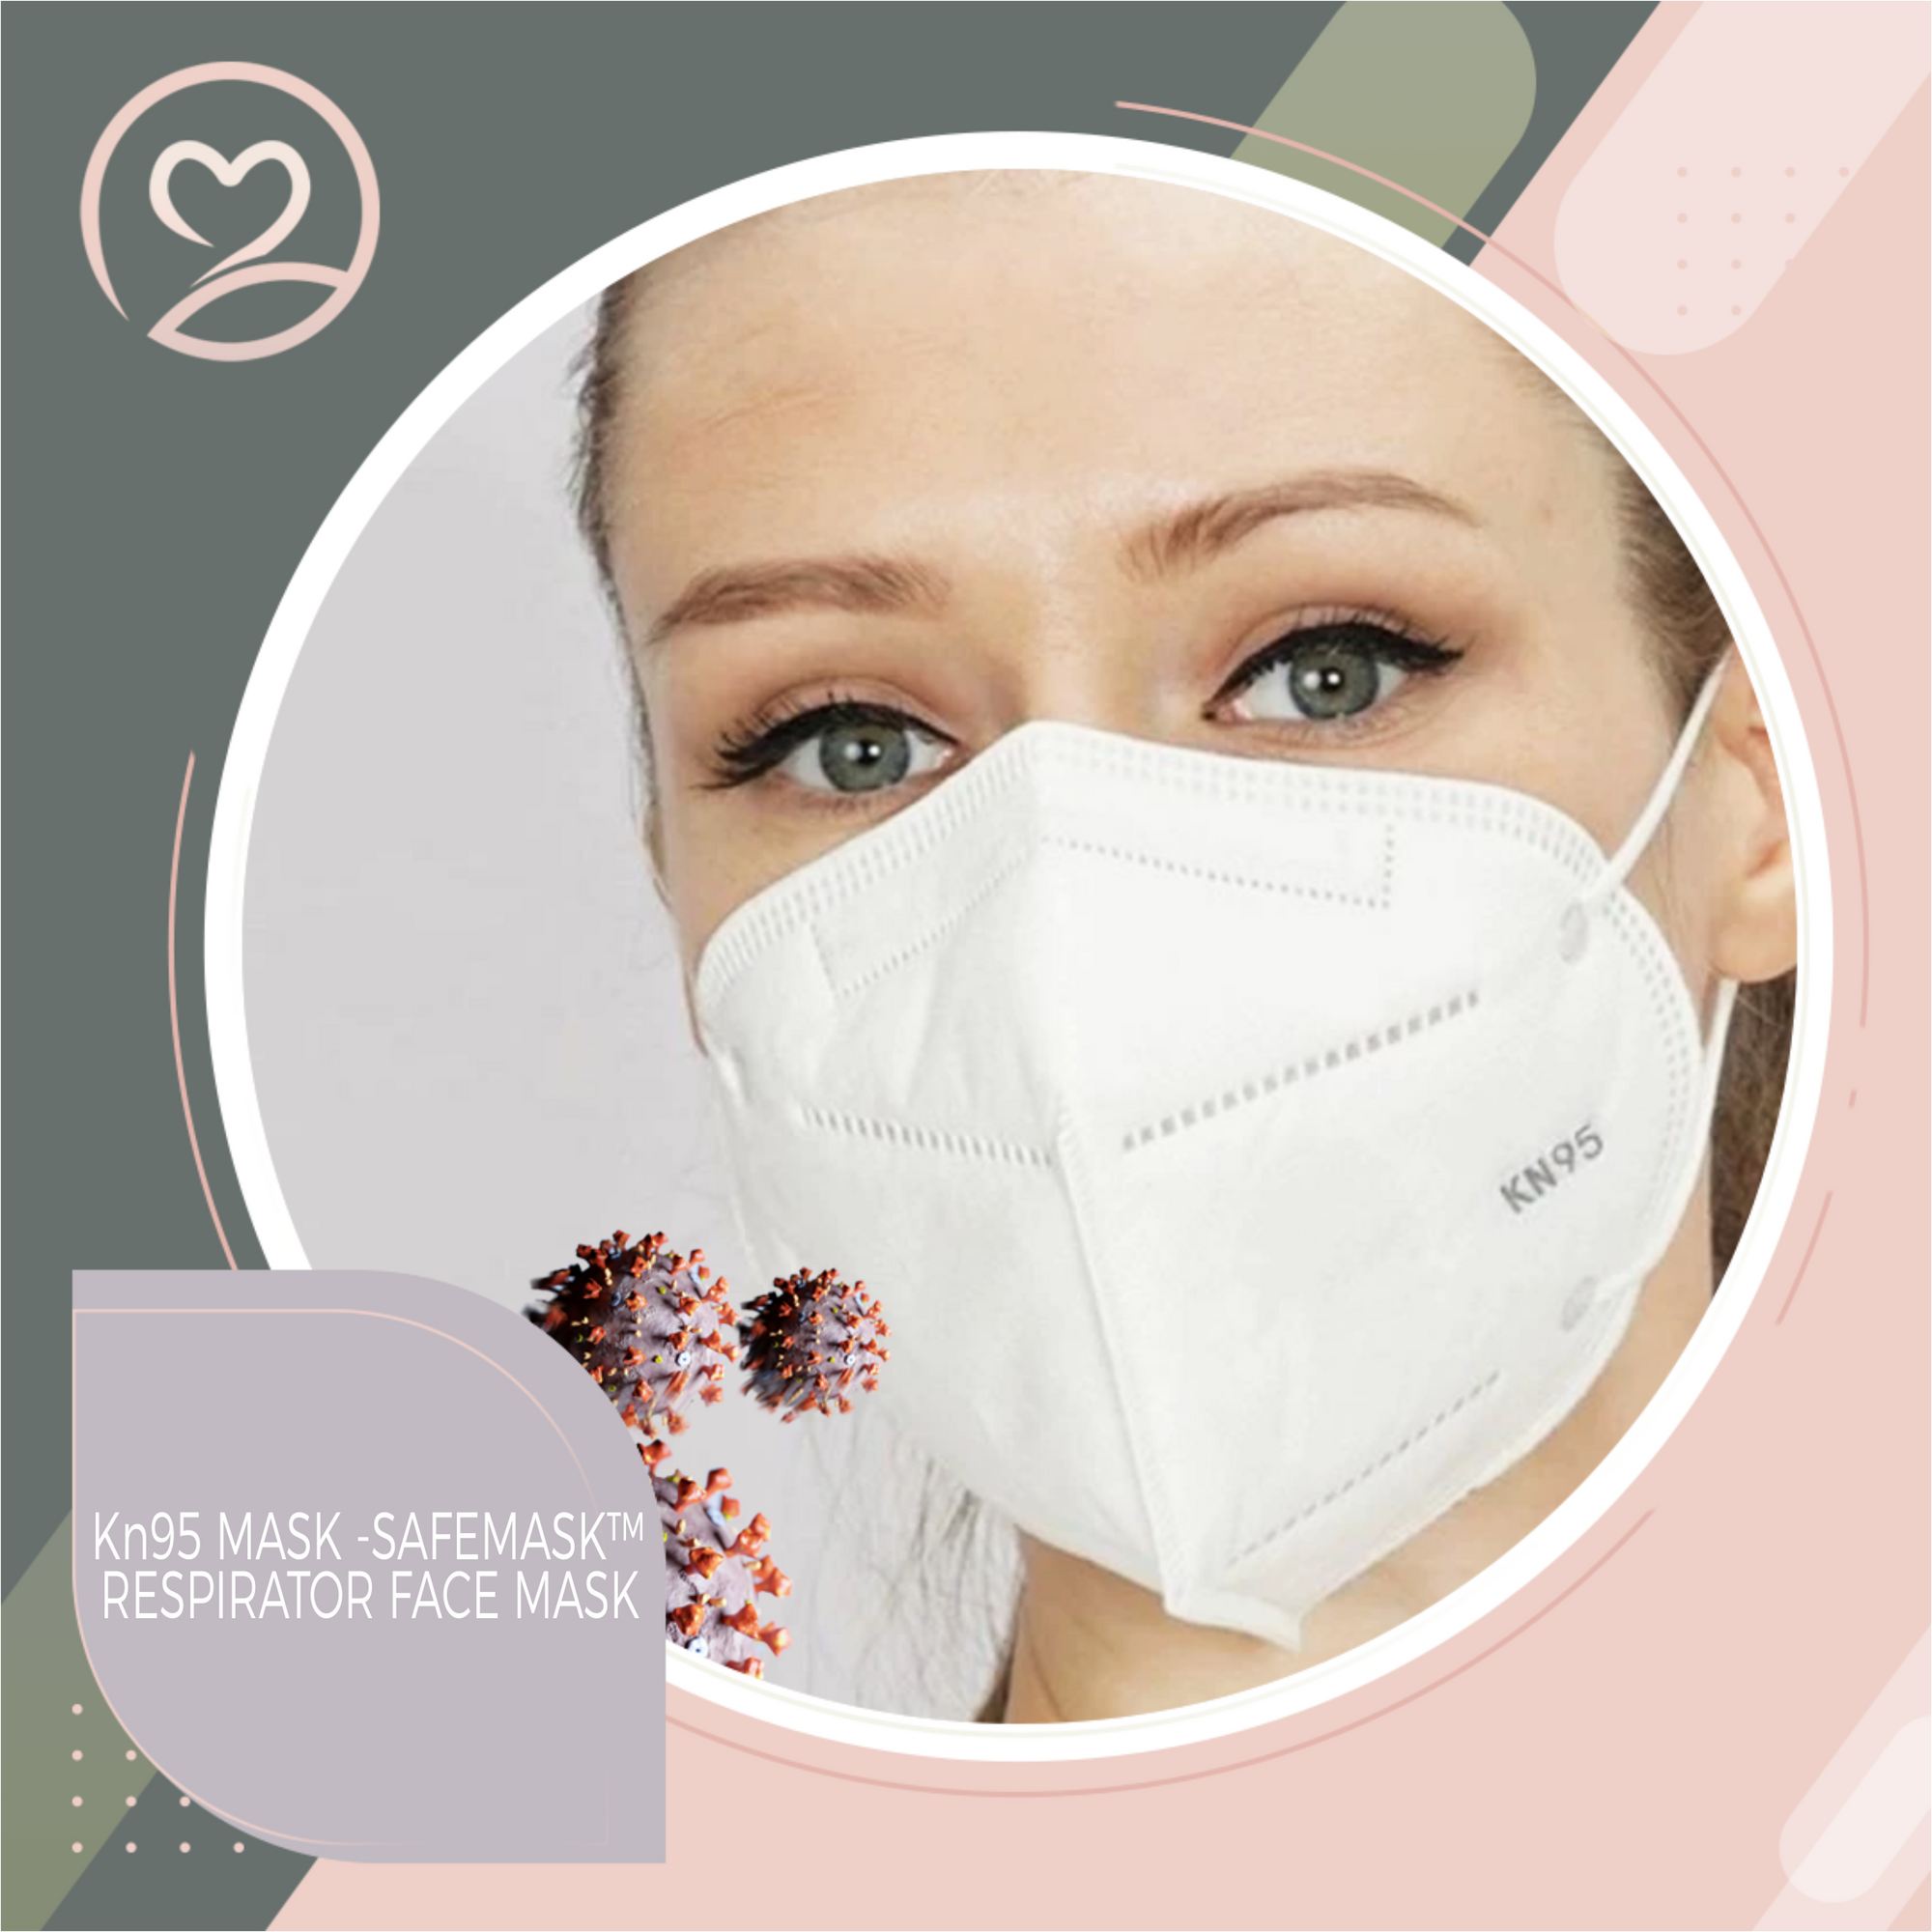 KN95 Mask -SafeMask™ Respirator Face Mask